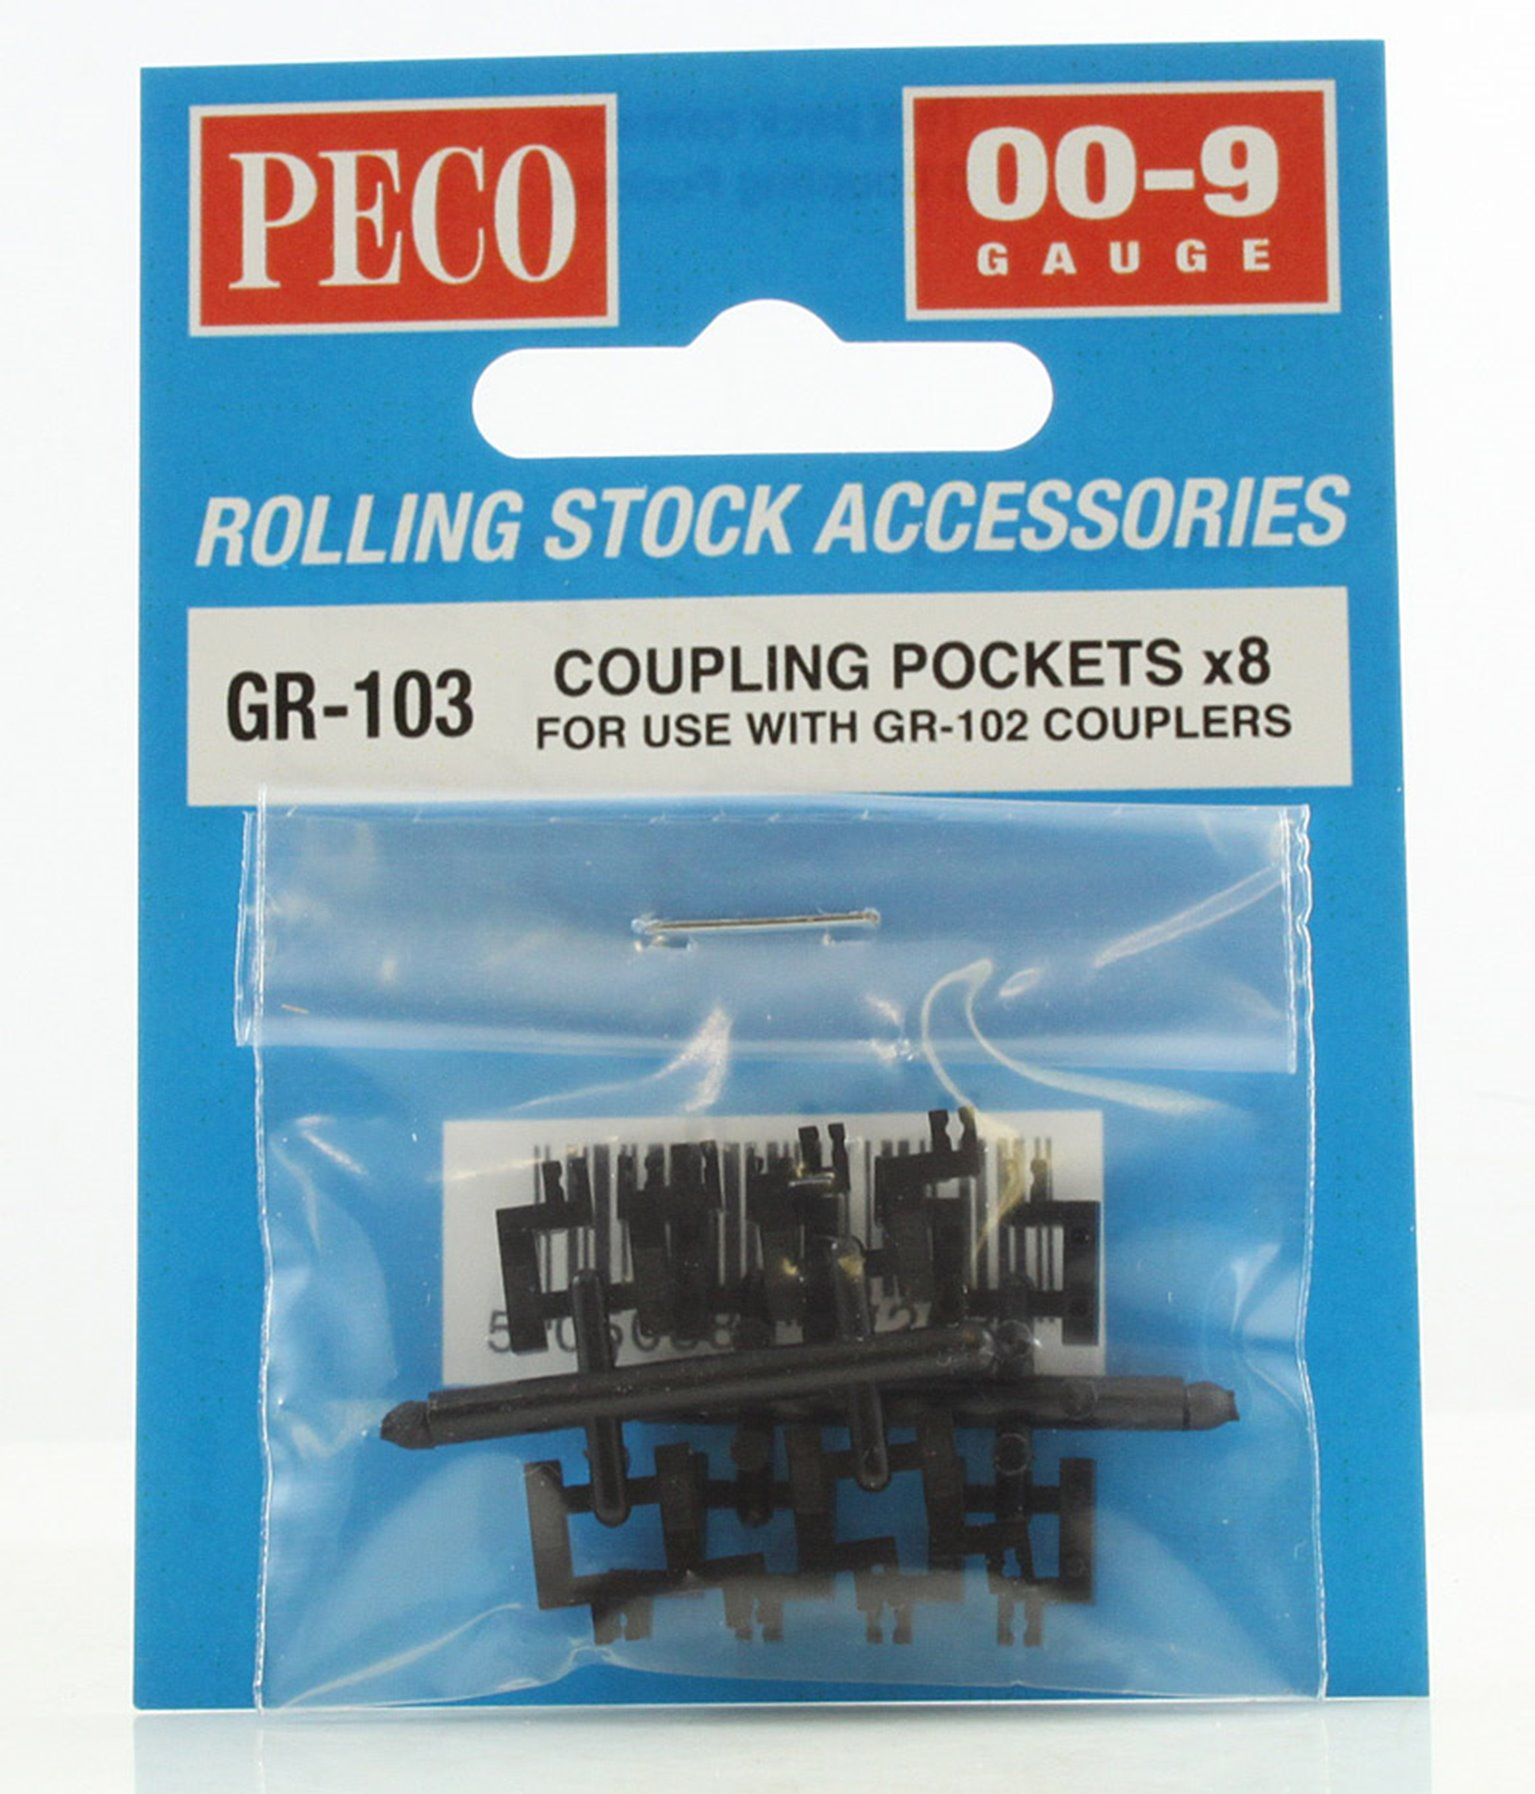 Coupling Pockets x8 (For use with GR-102 Couplers)